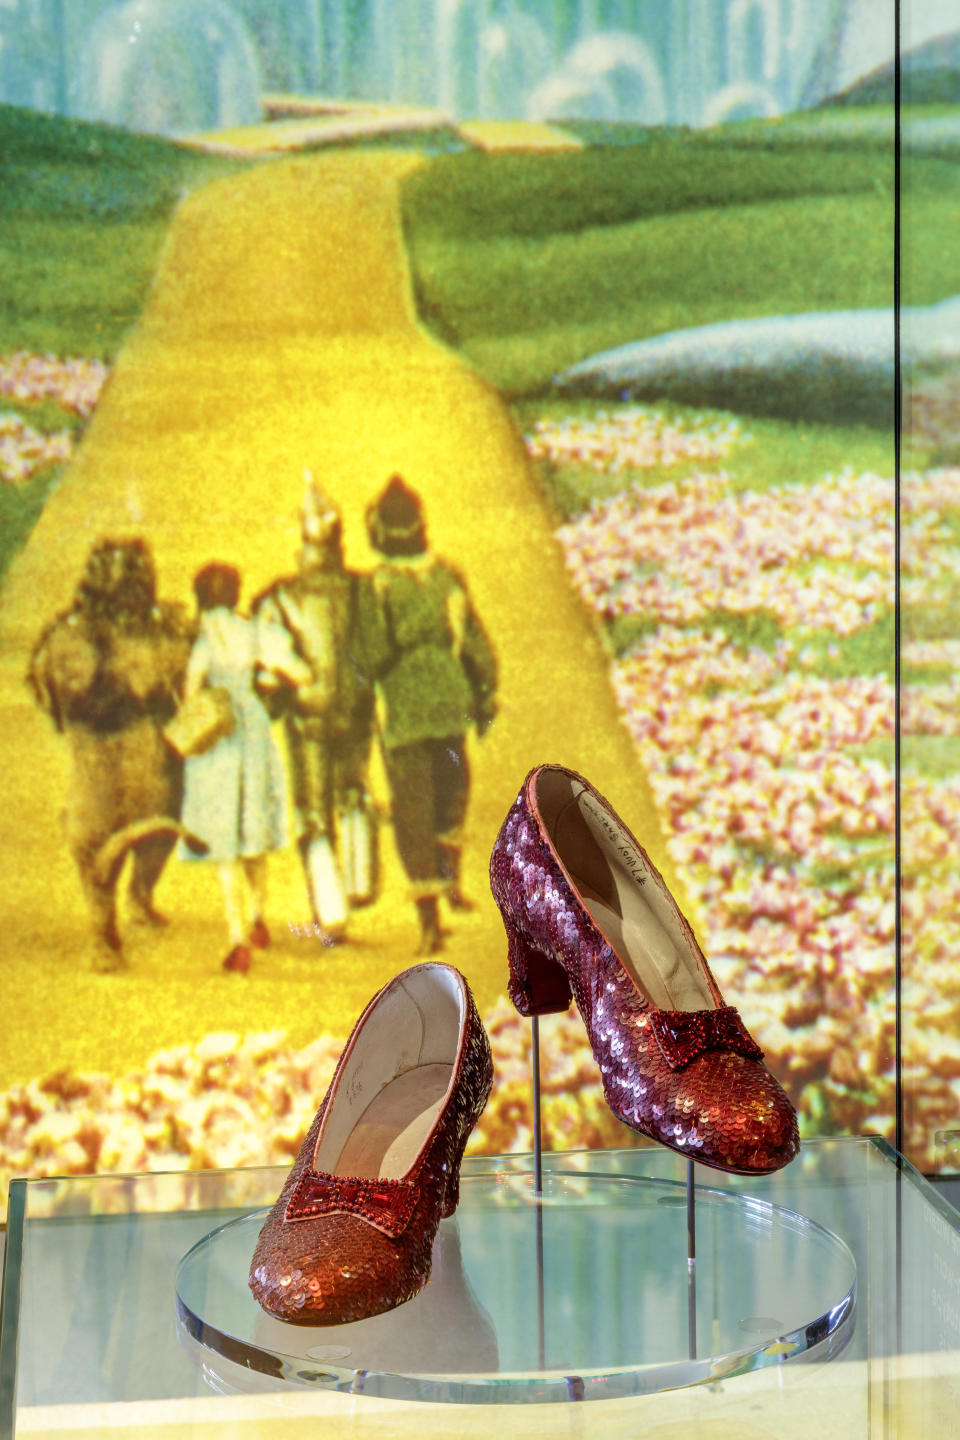 """The iconic ruby slippers from """"The Wizard of Oz"""" - Credit: Joshua White"""